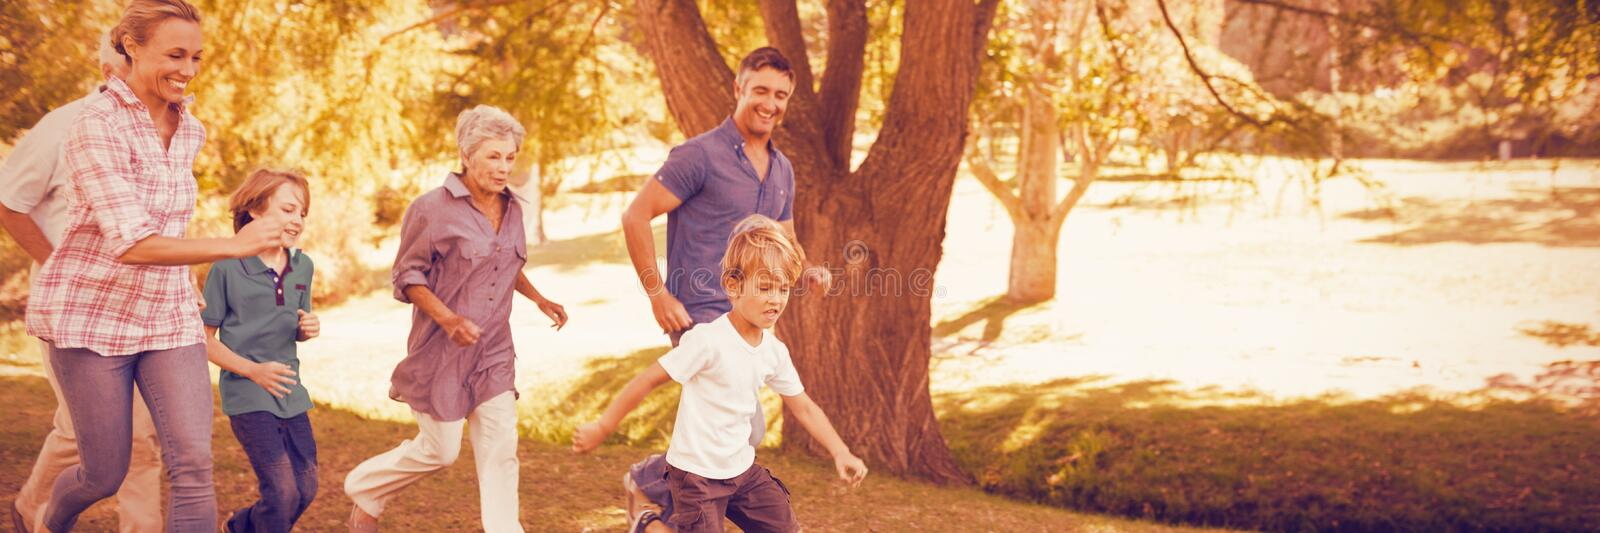 Happy family playing soccer stock image